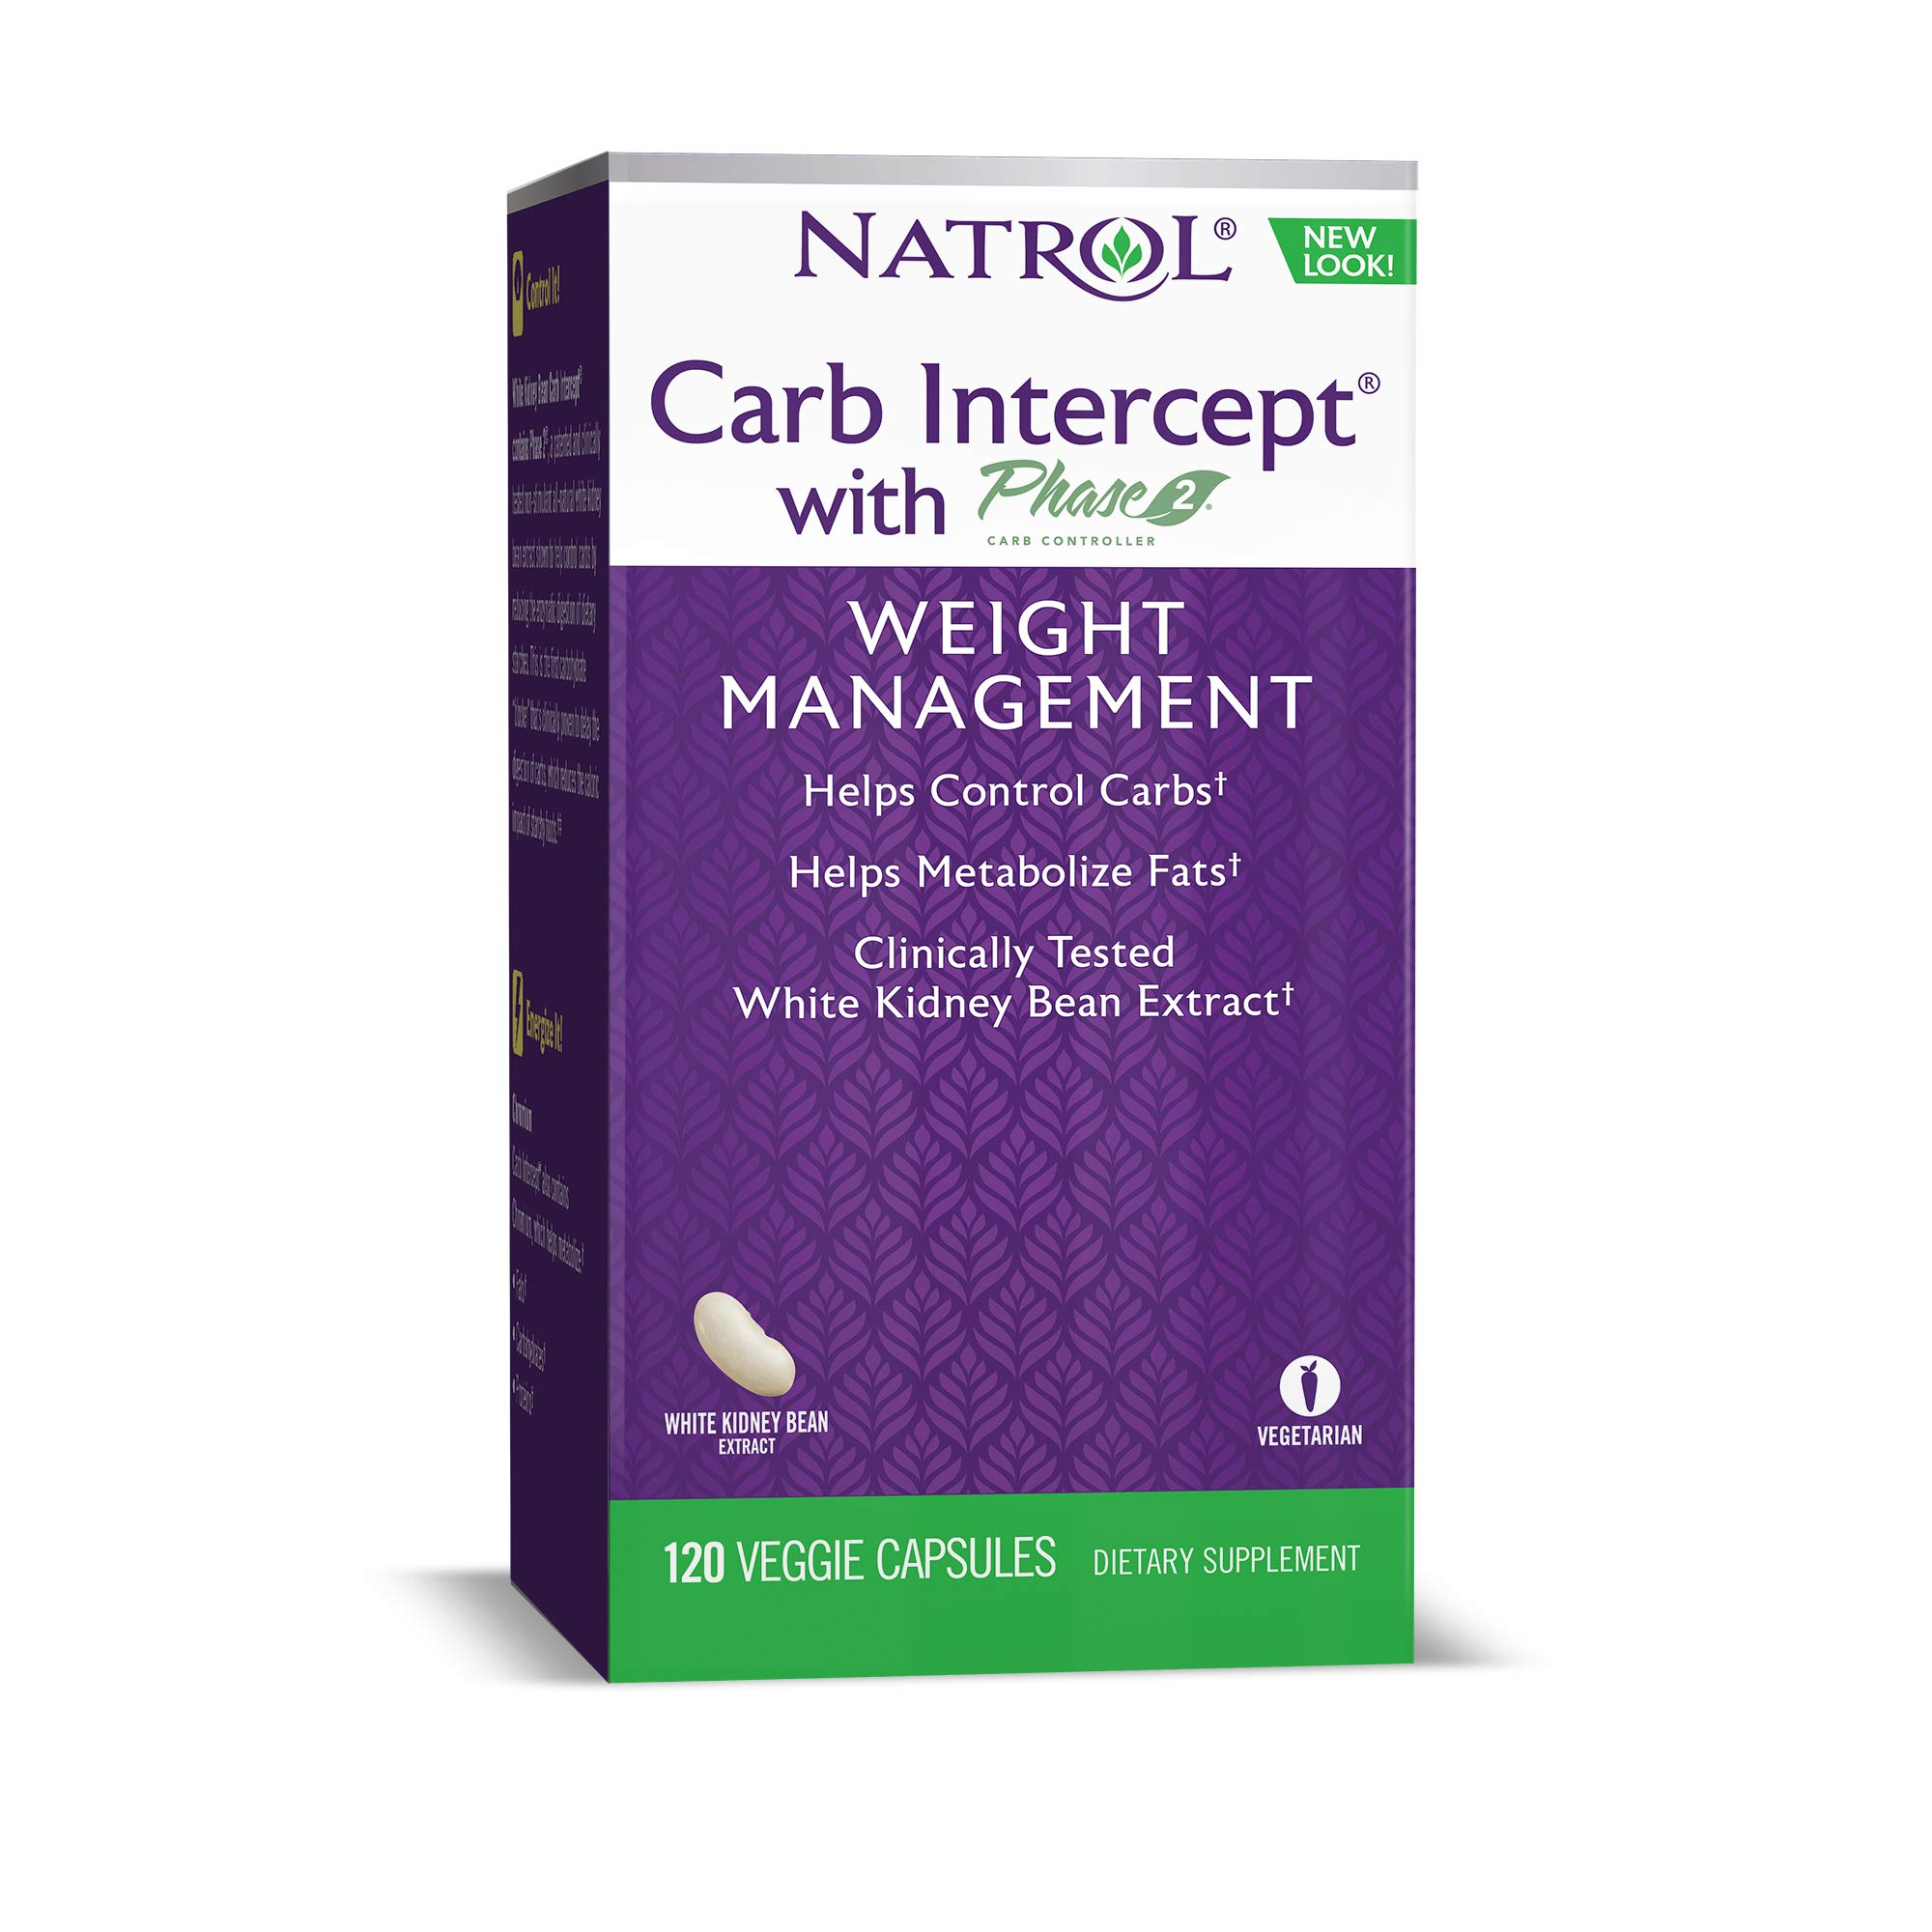 Natrol Carb Intercept with Phase 2 Carb Controller Capsules, White Kidney Bean Extract, Helps Control Carbs, Helps Metabolize Fats, Clinically Tested, Promotes Healthy Body Weight, 1,000mg, 120 Count